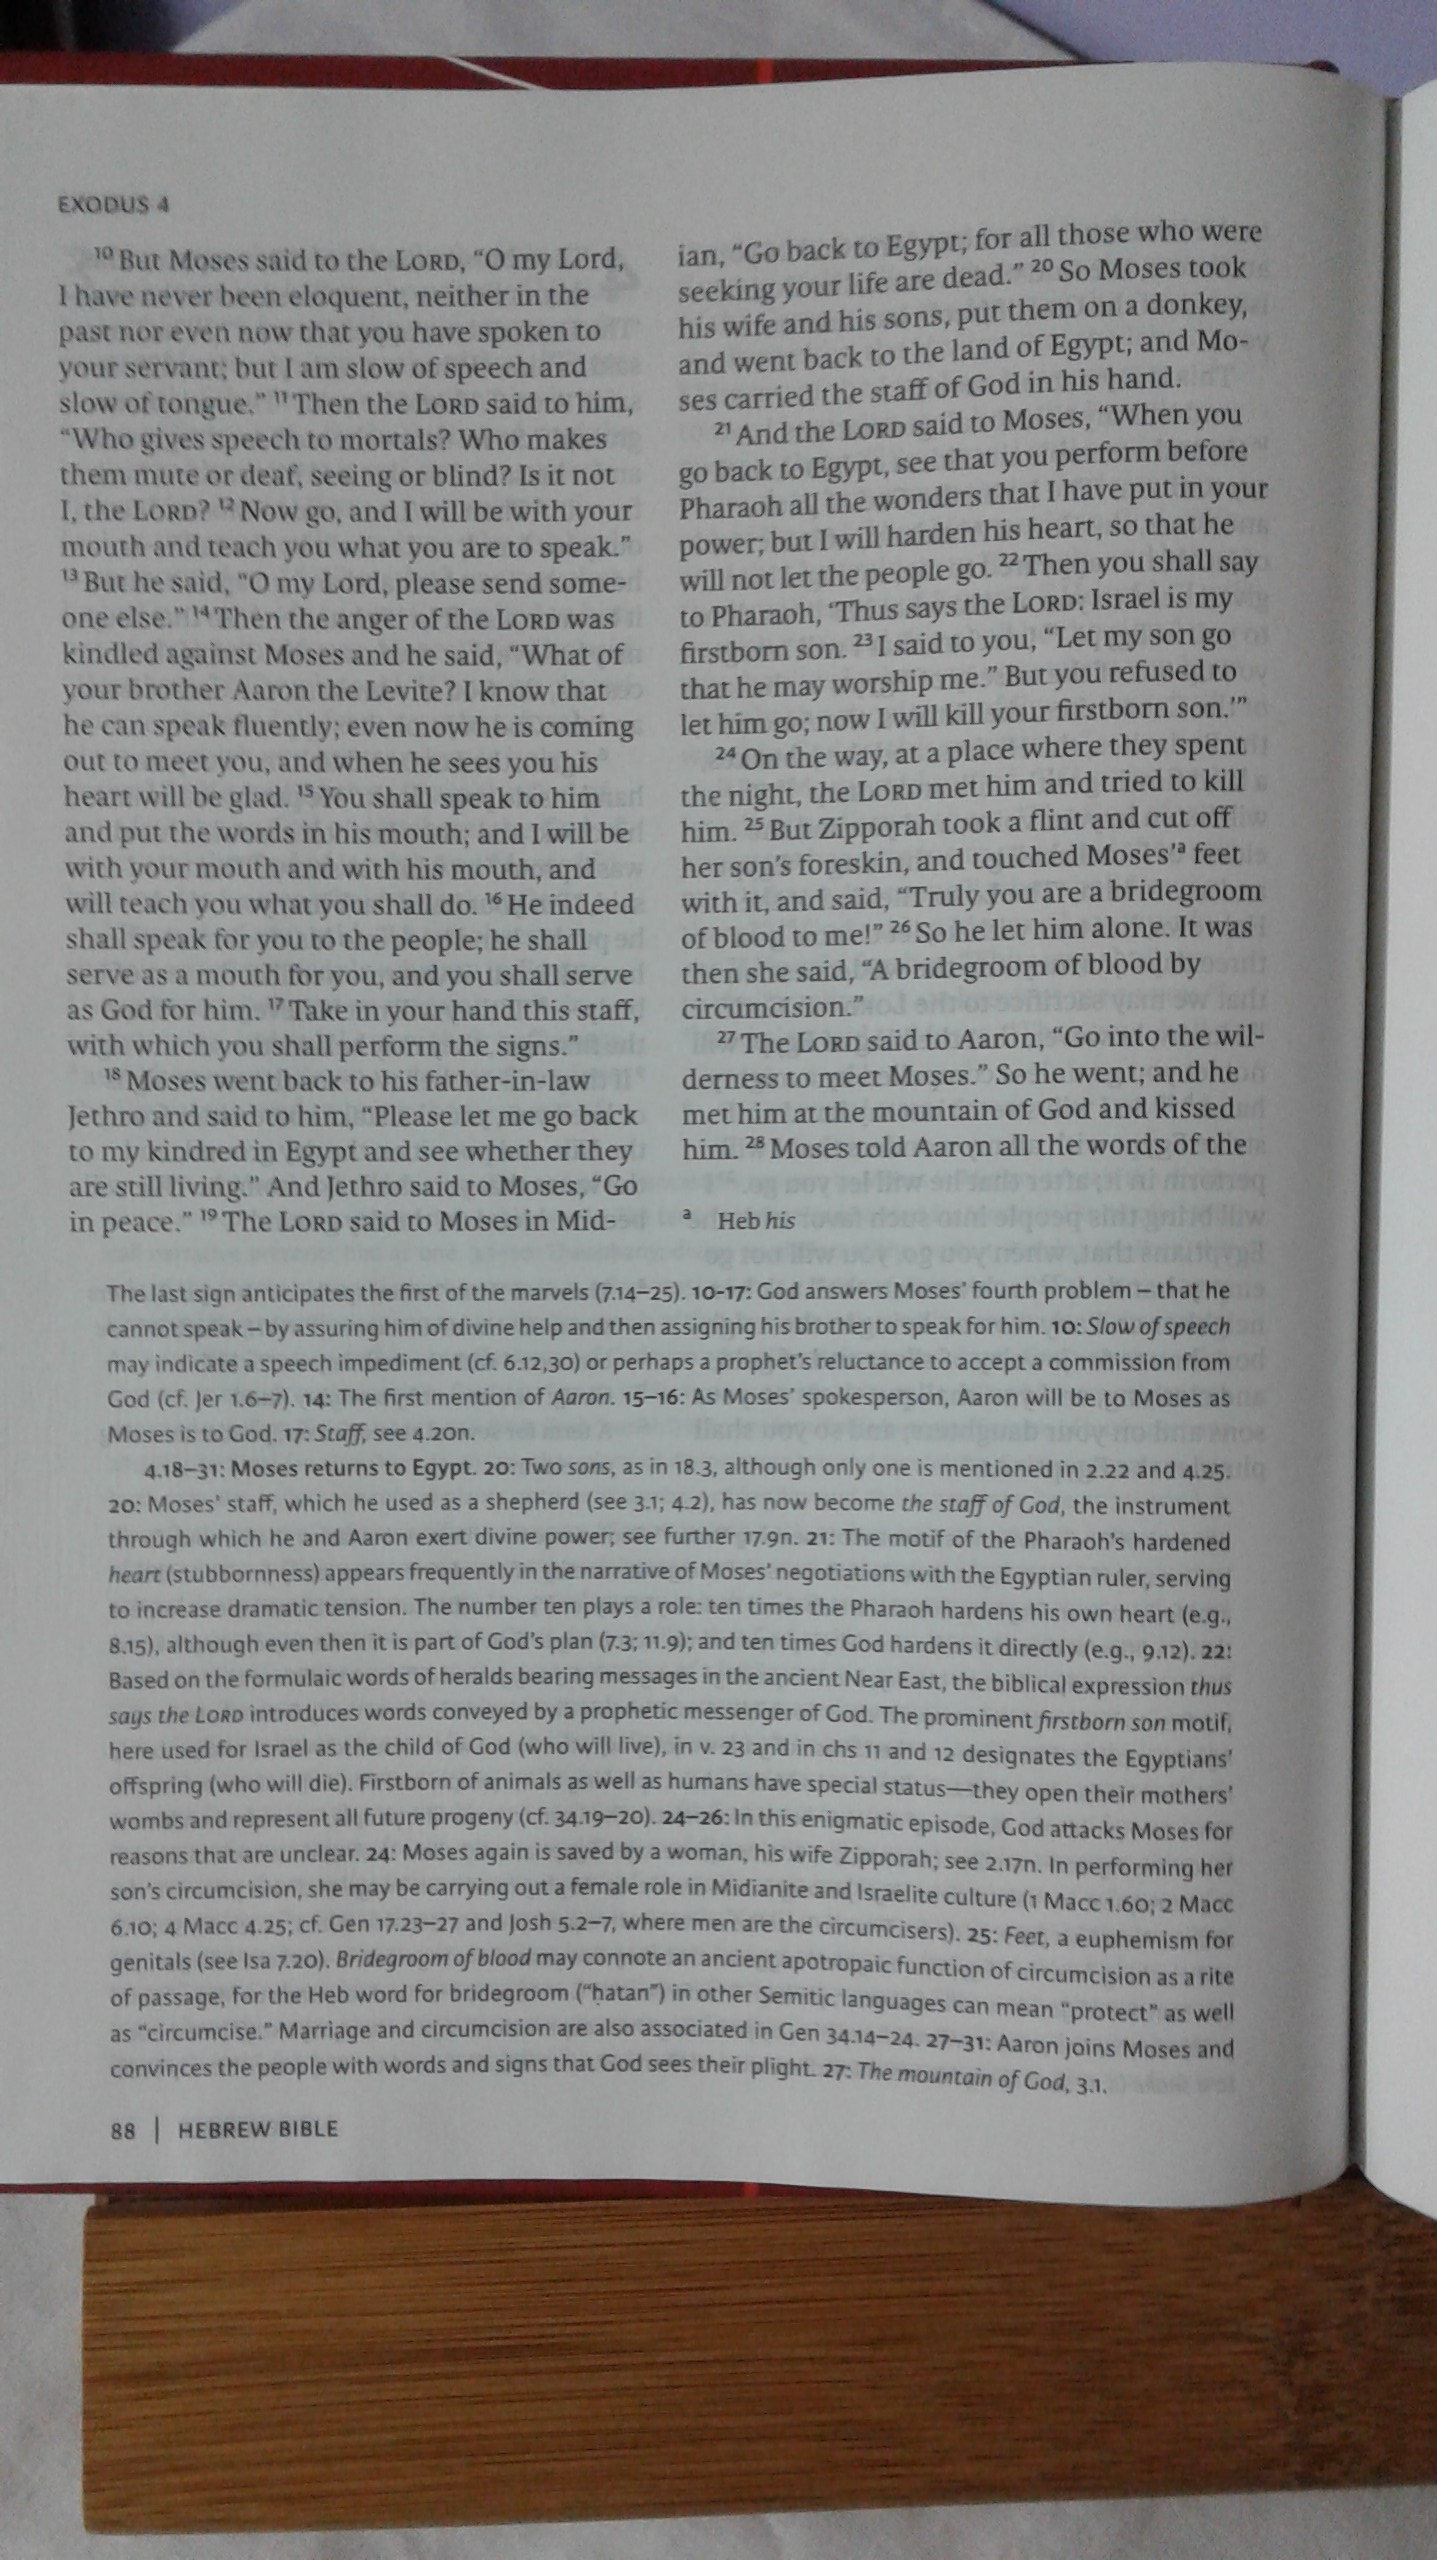 new oxford annotated bible review